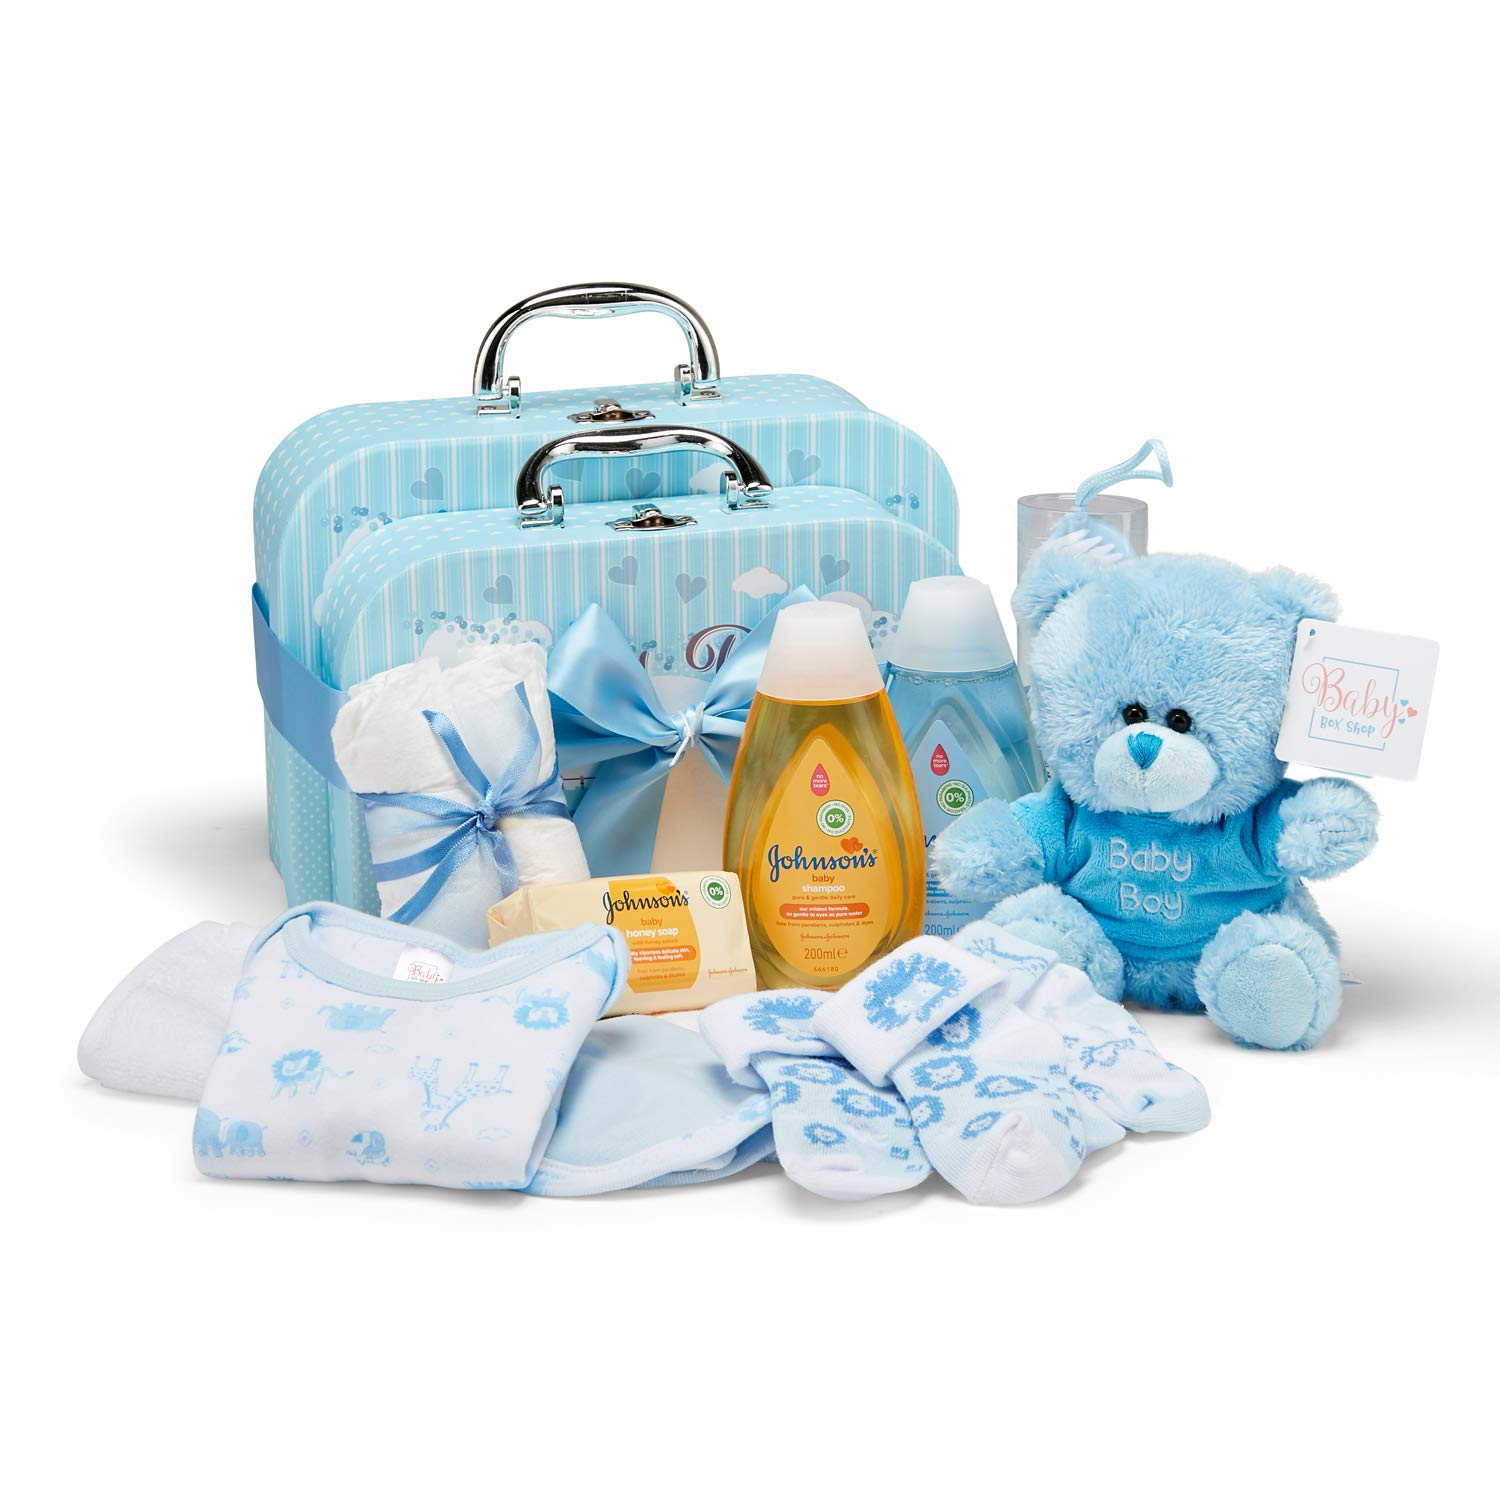 Baby Newborn 5 Piece Boxed Clothing Gift Set Boys Girls Pink Blue Sets New